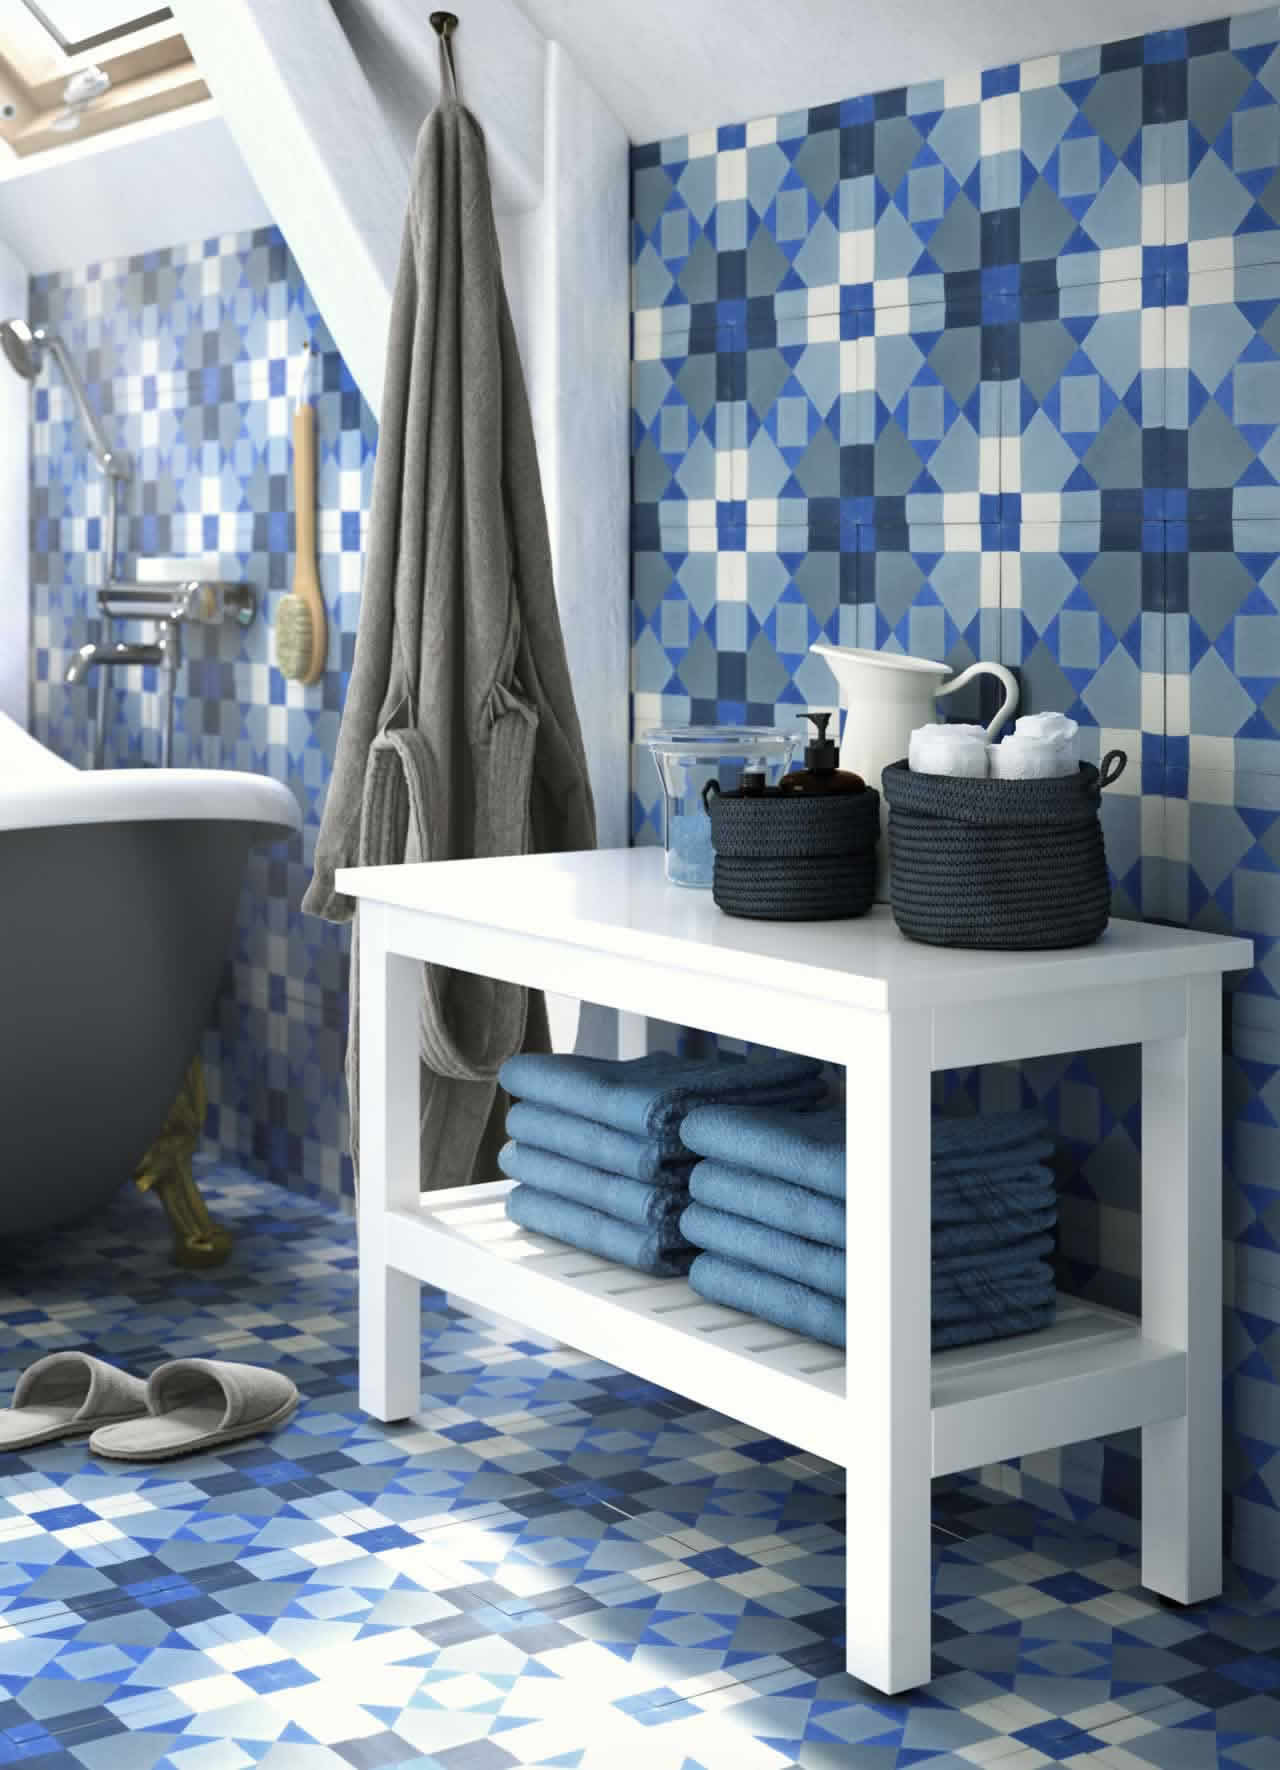 IKEA Ideas - Affordable luxury in a spa-style bathroom